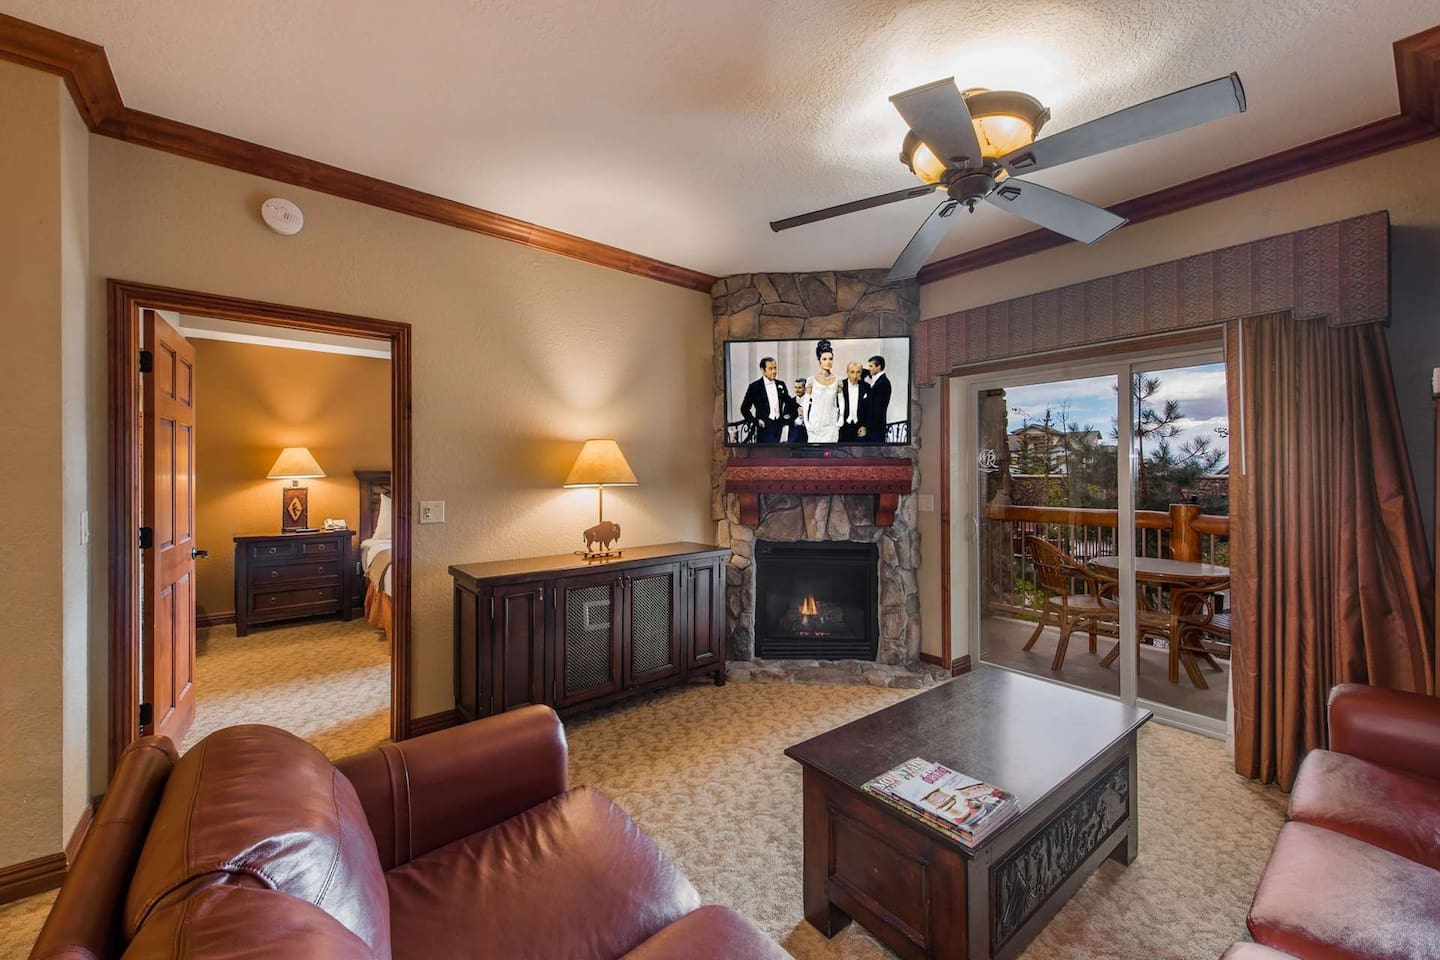 New Leather Sofas, Gas fireplace, Cable HDTV, Wifi, Private Patio,